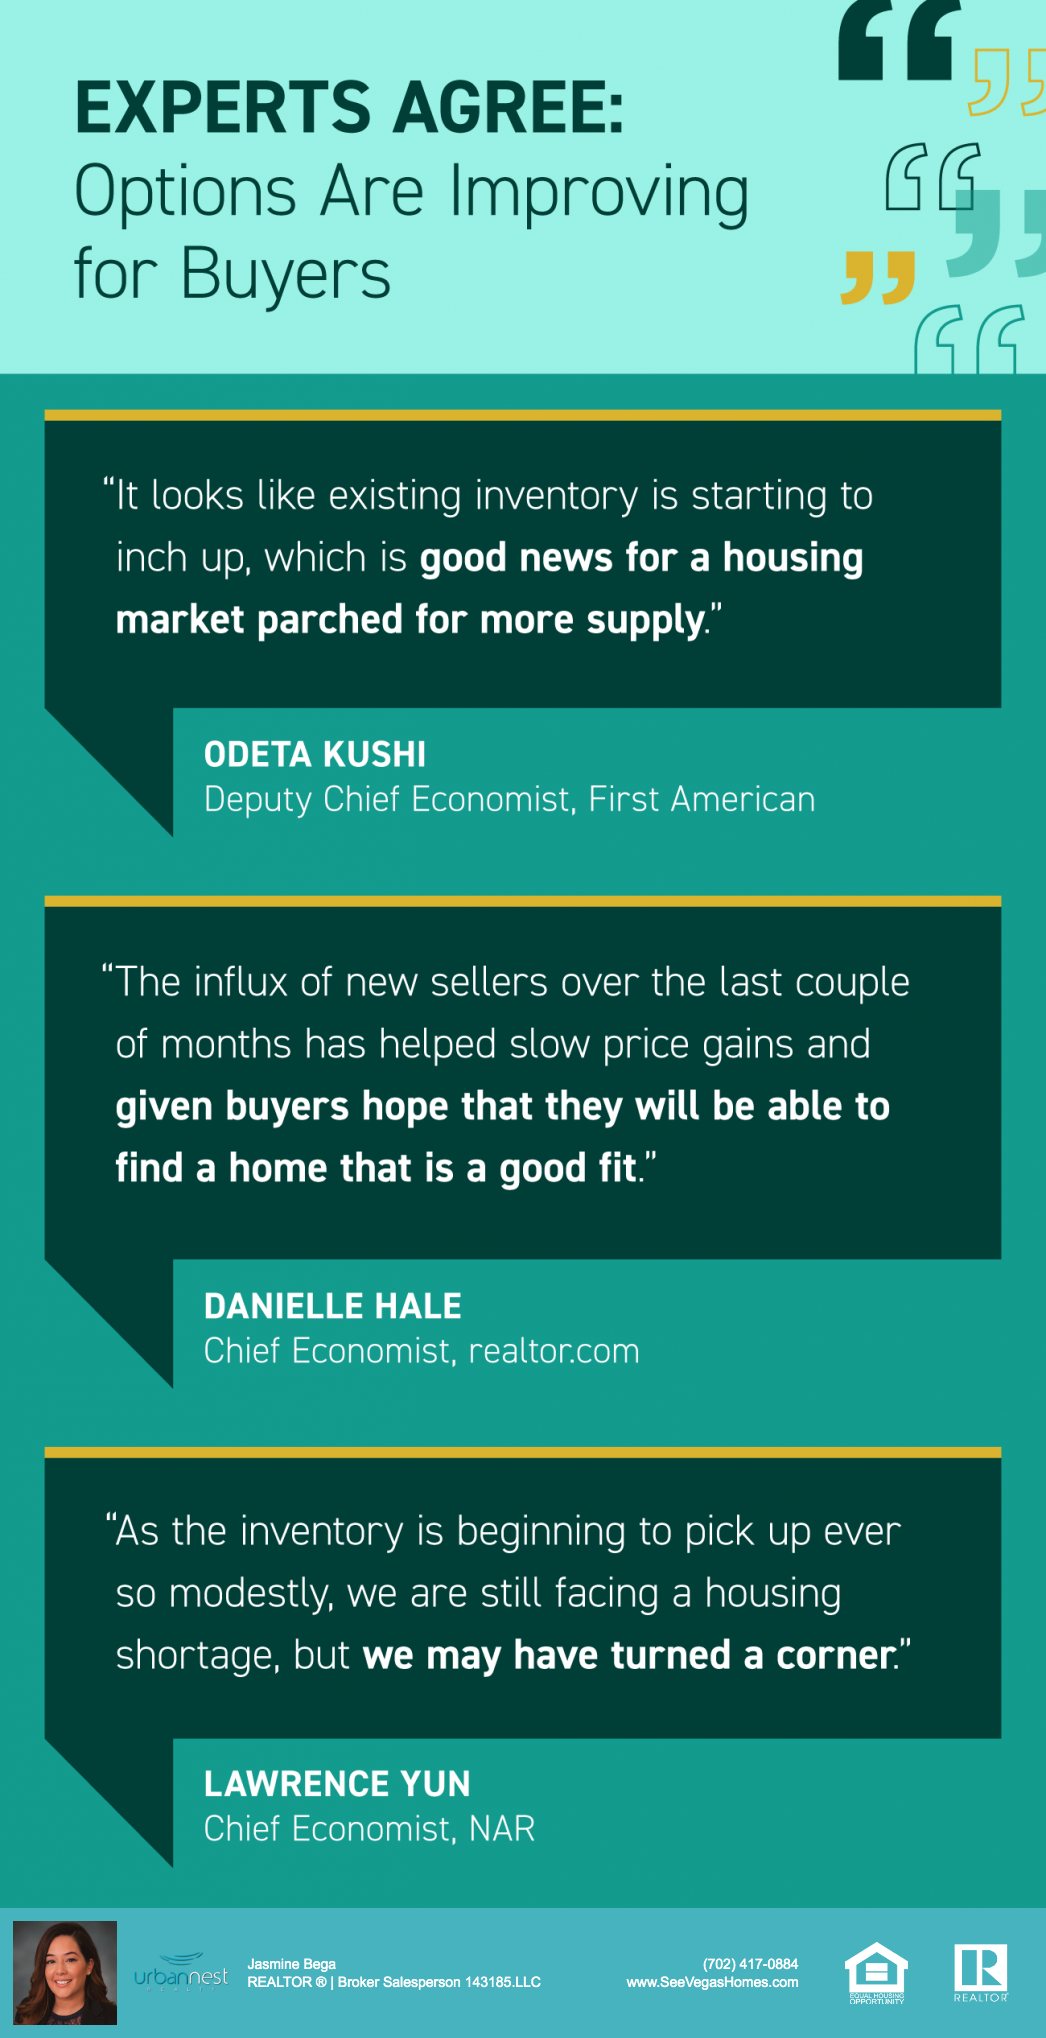 Experts Agree - Options Are Improving for Buyers INFOGRAPHIC - seevegashomes